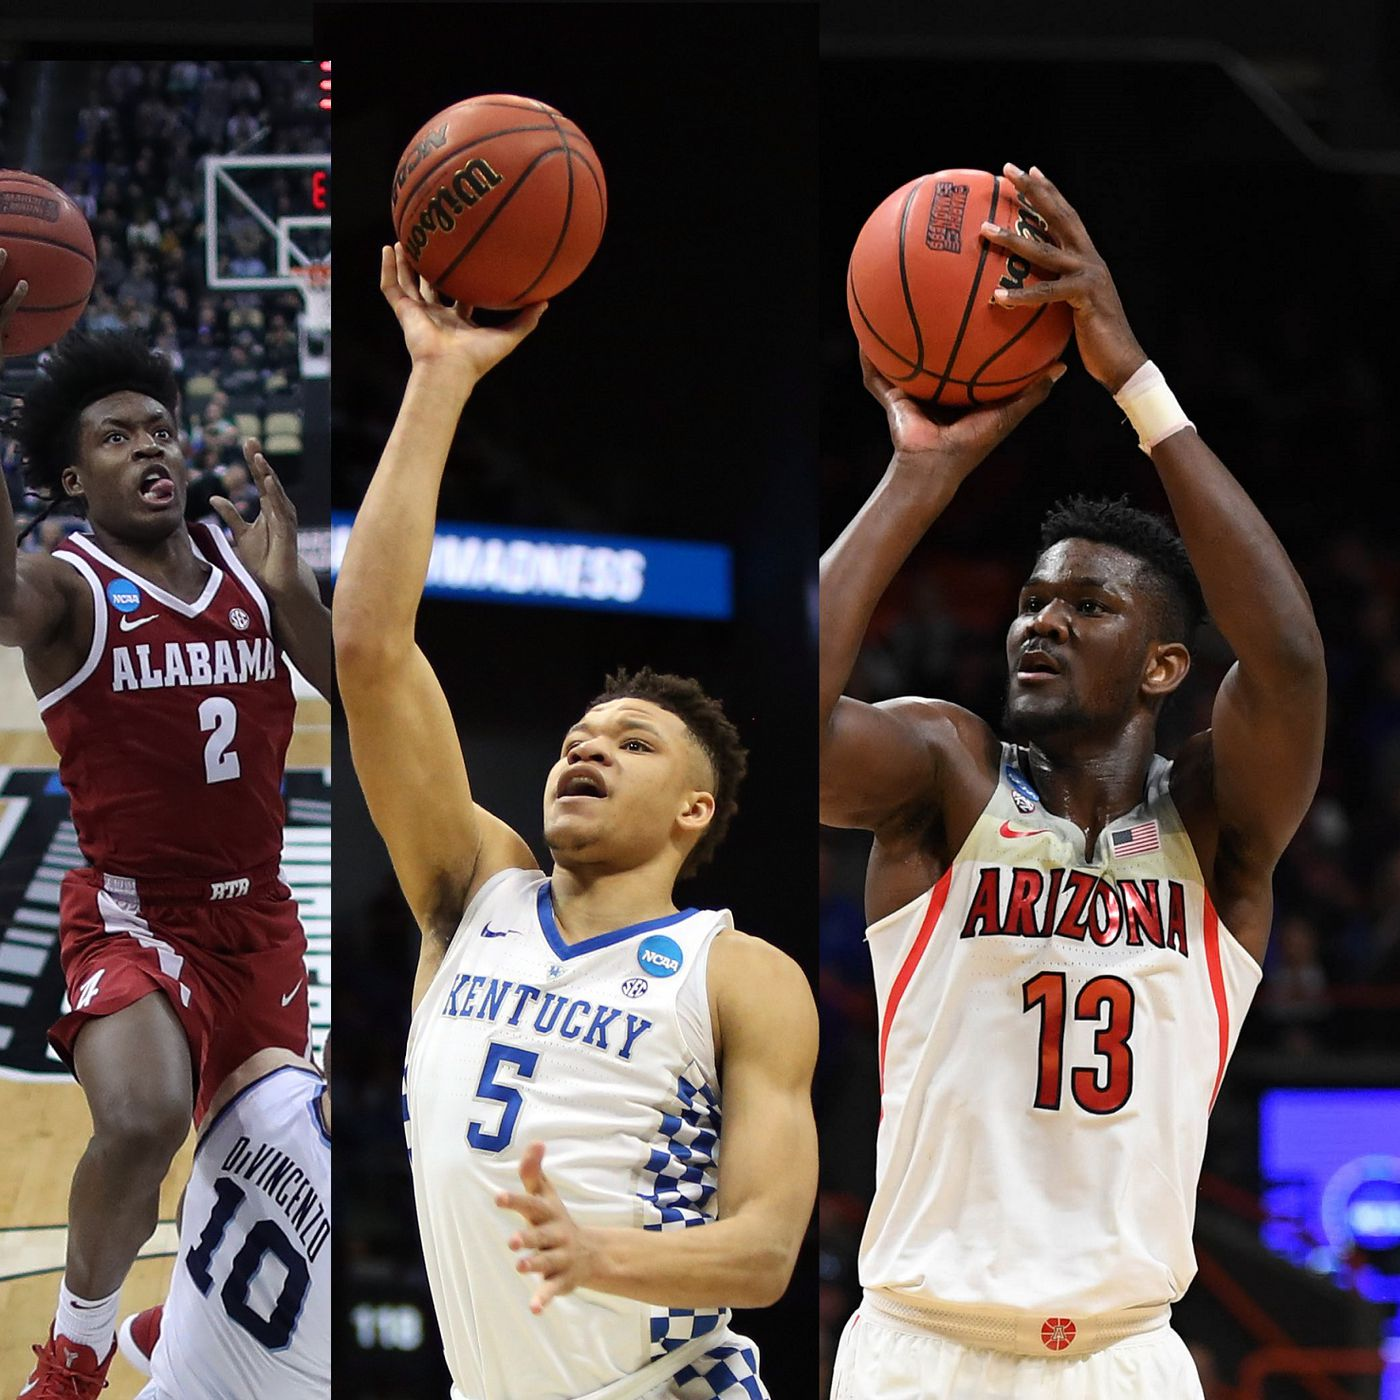 Nba Draft Rankings 2018 Espn Big Board Updated For Top 100